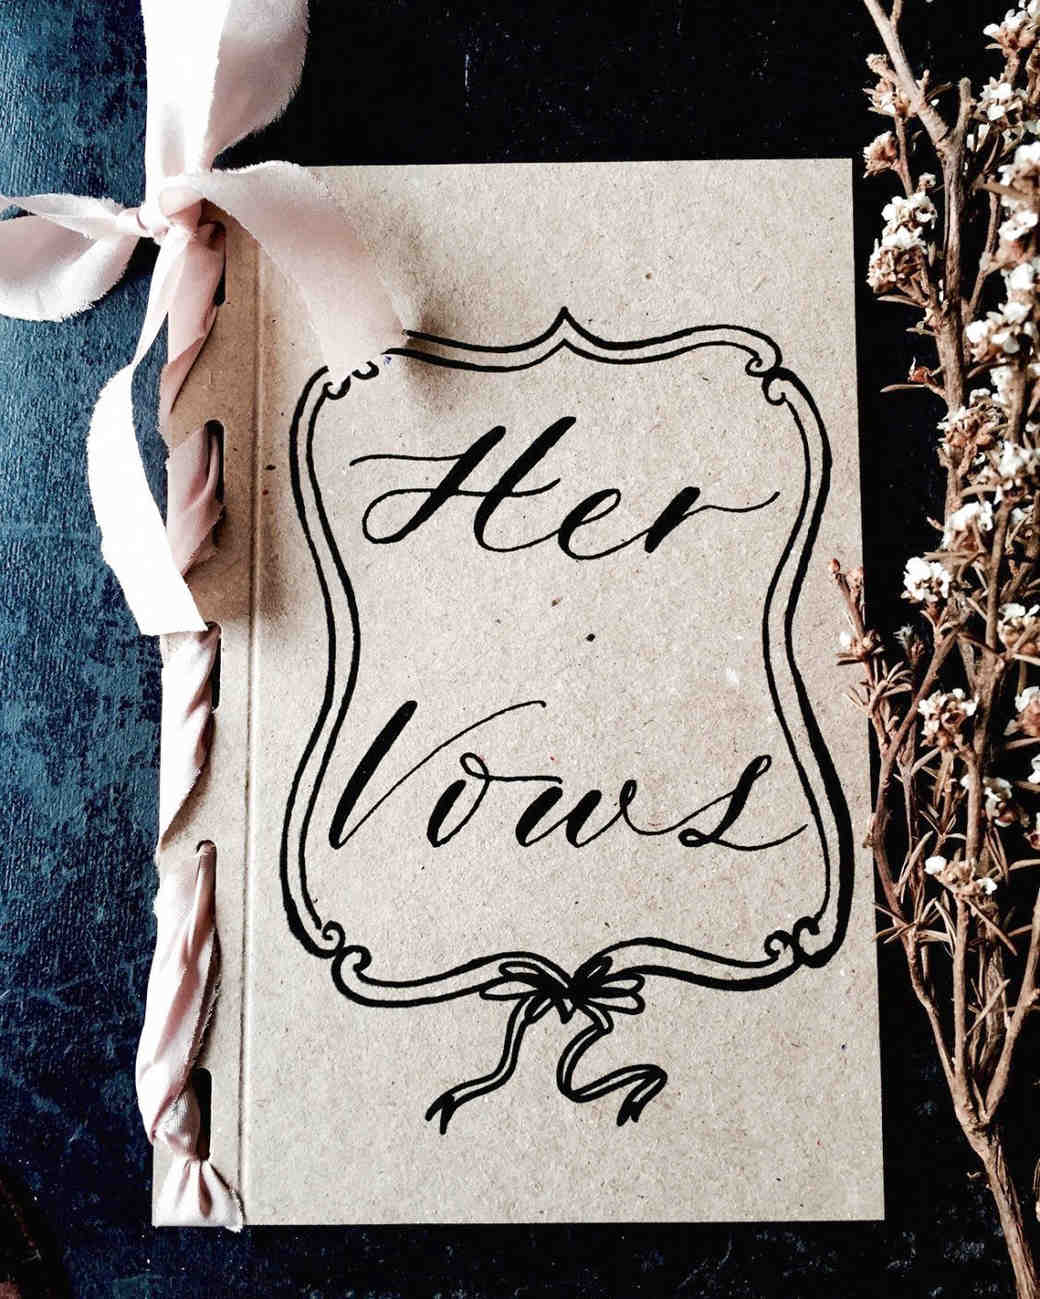 her vows book recycled card cover and dyed silk ribbon